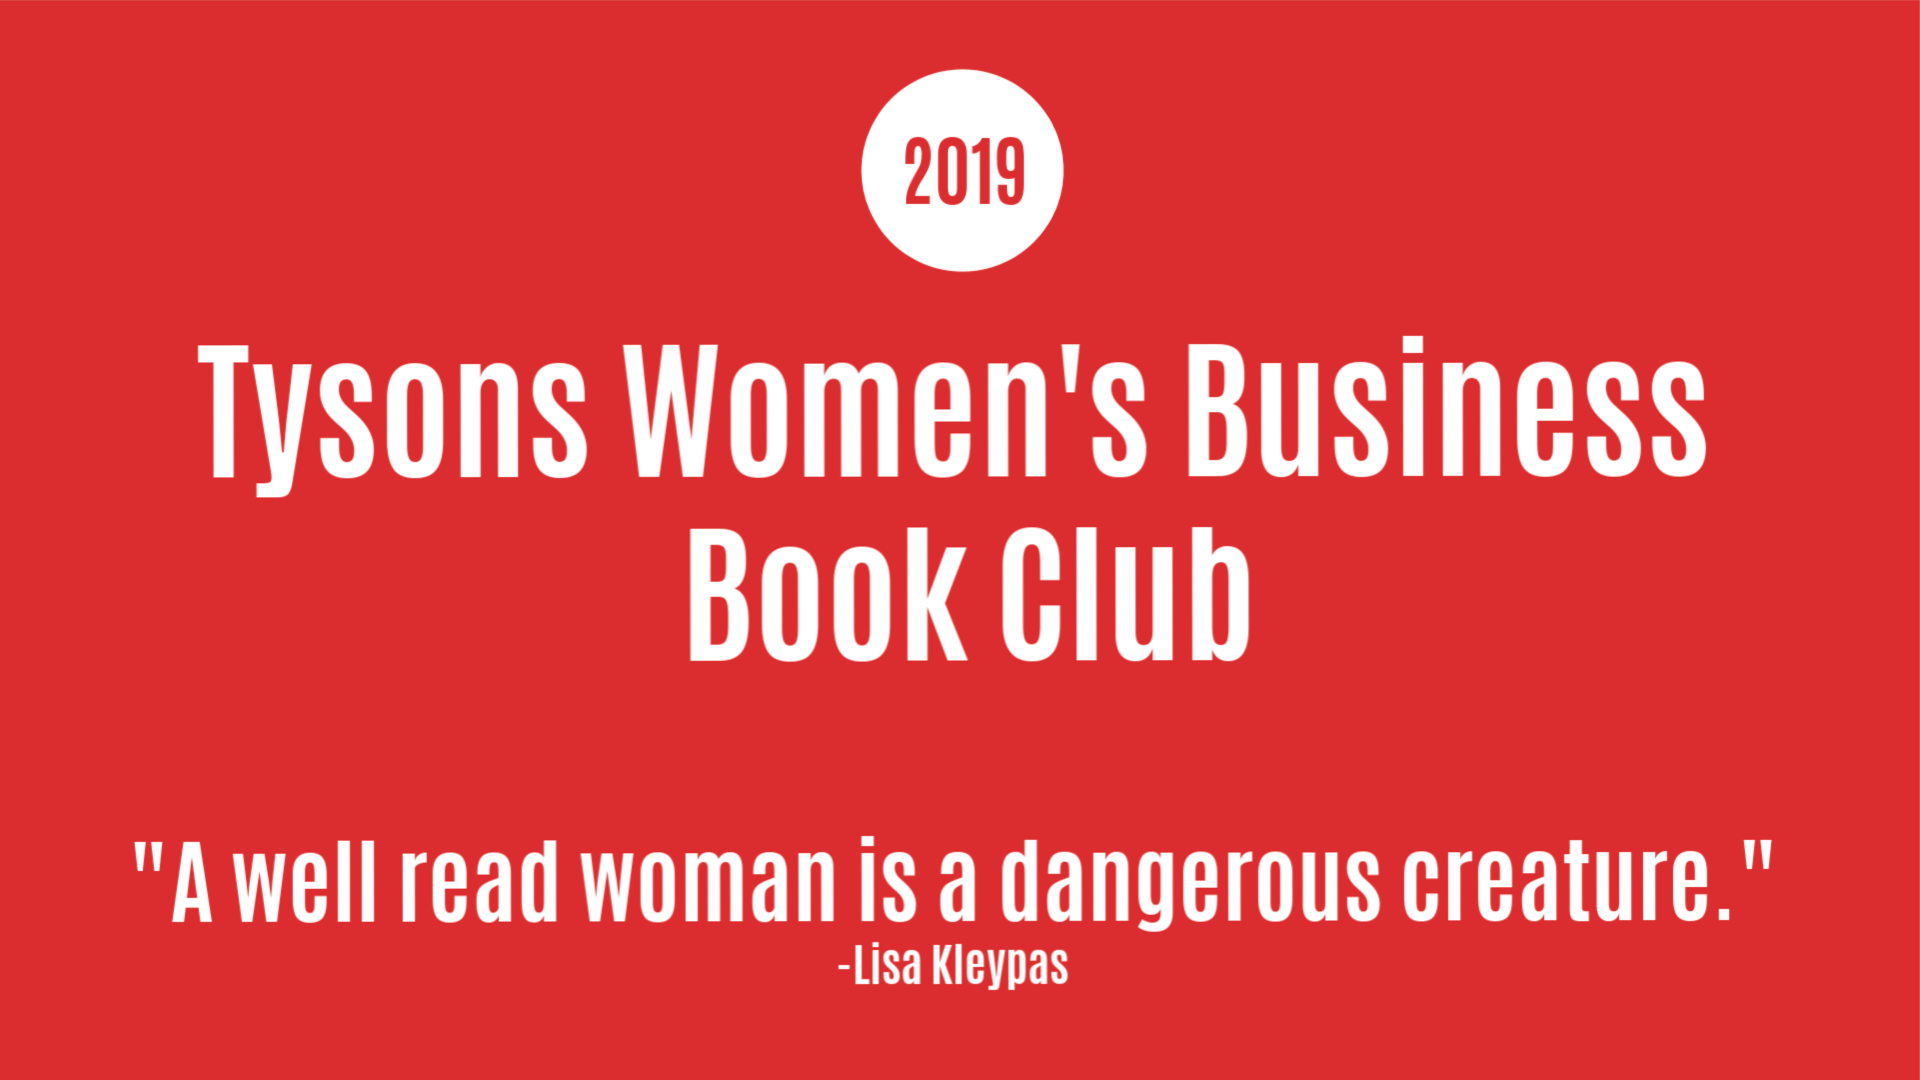 Tysons Women's Business Book Club